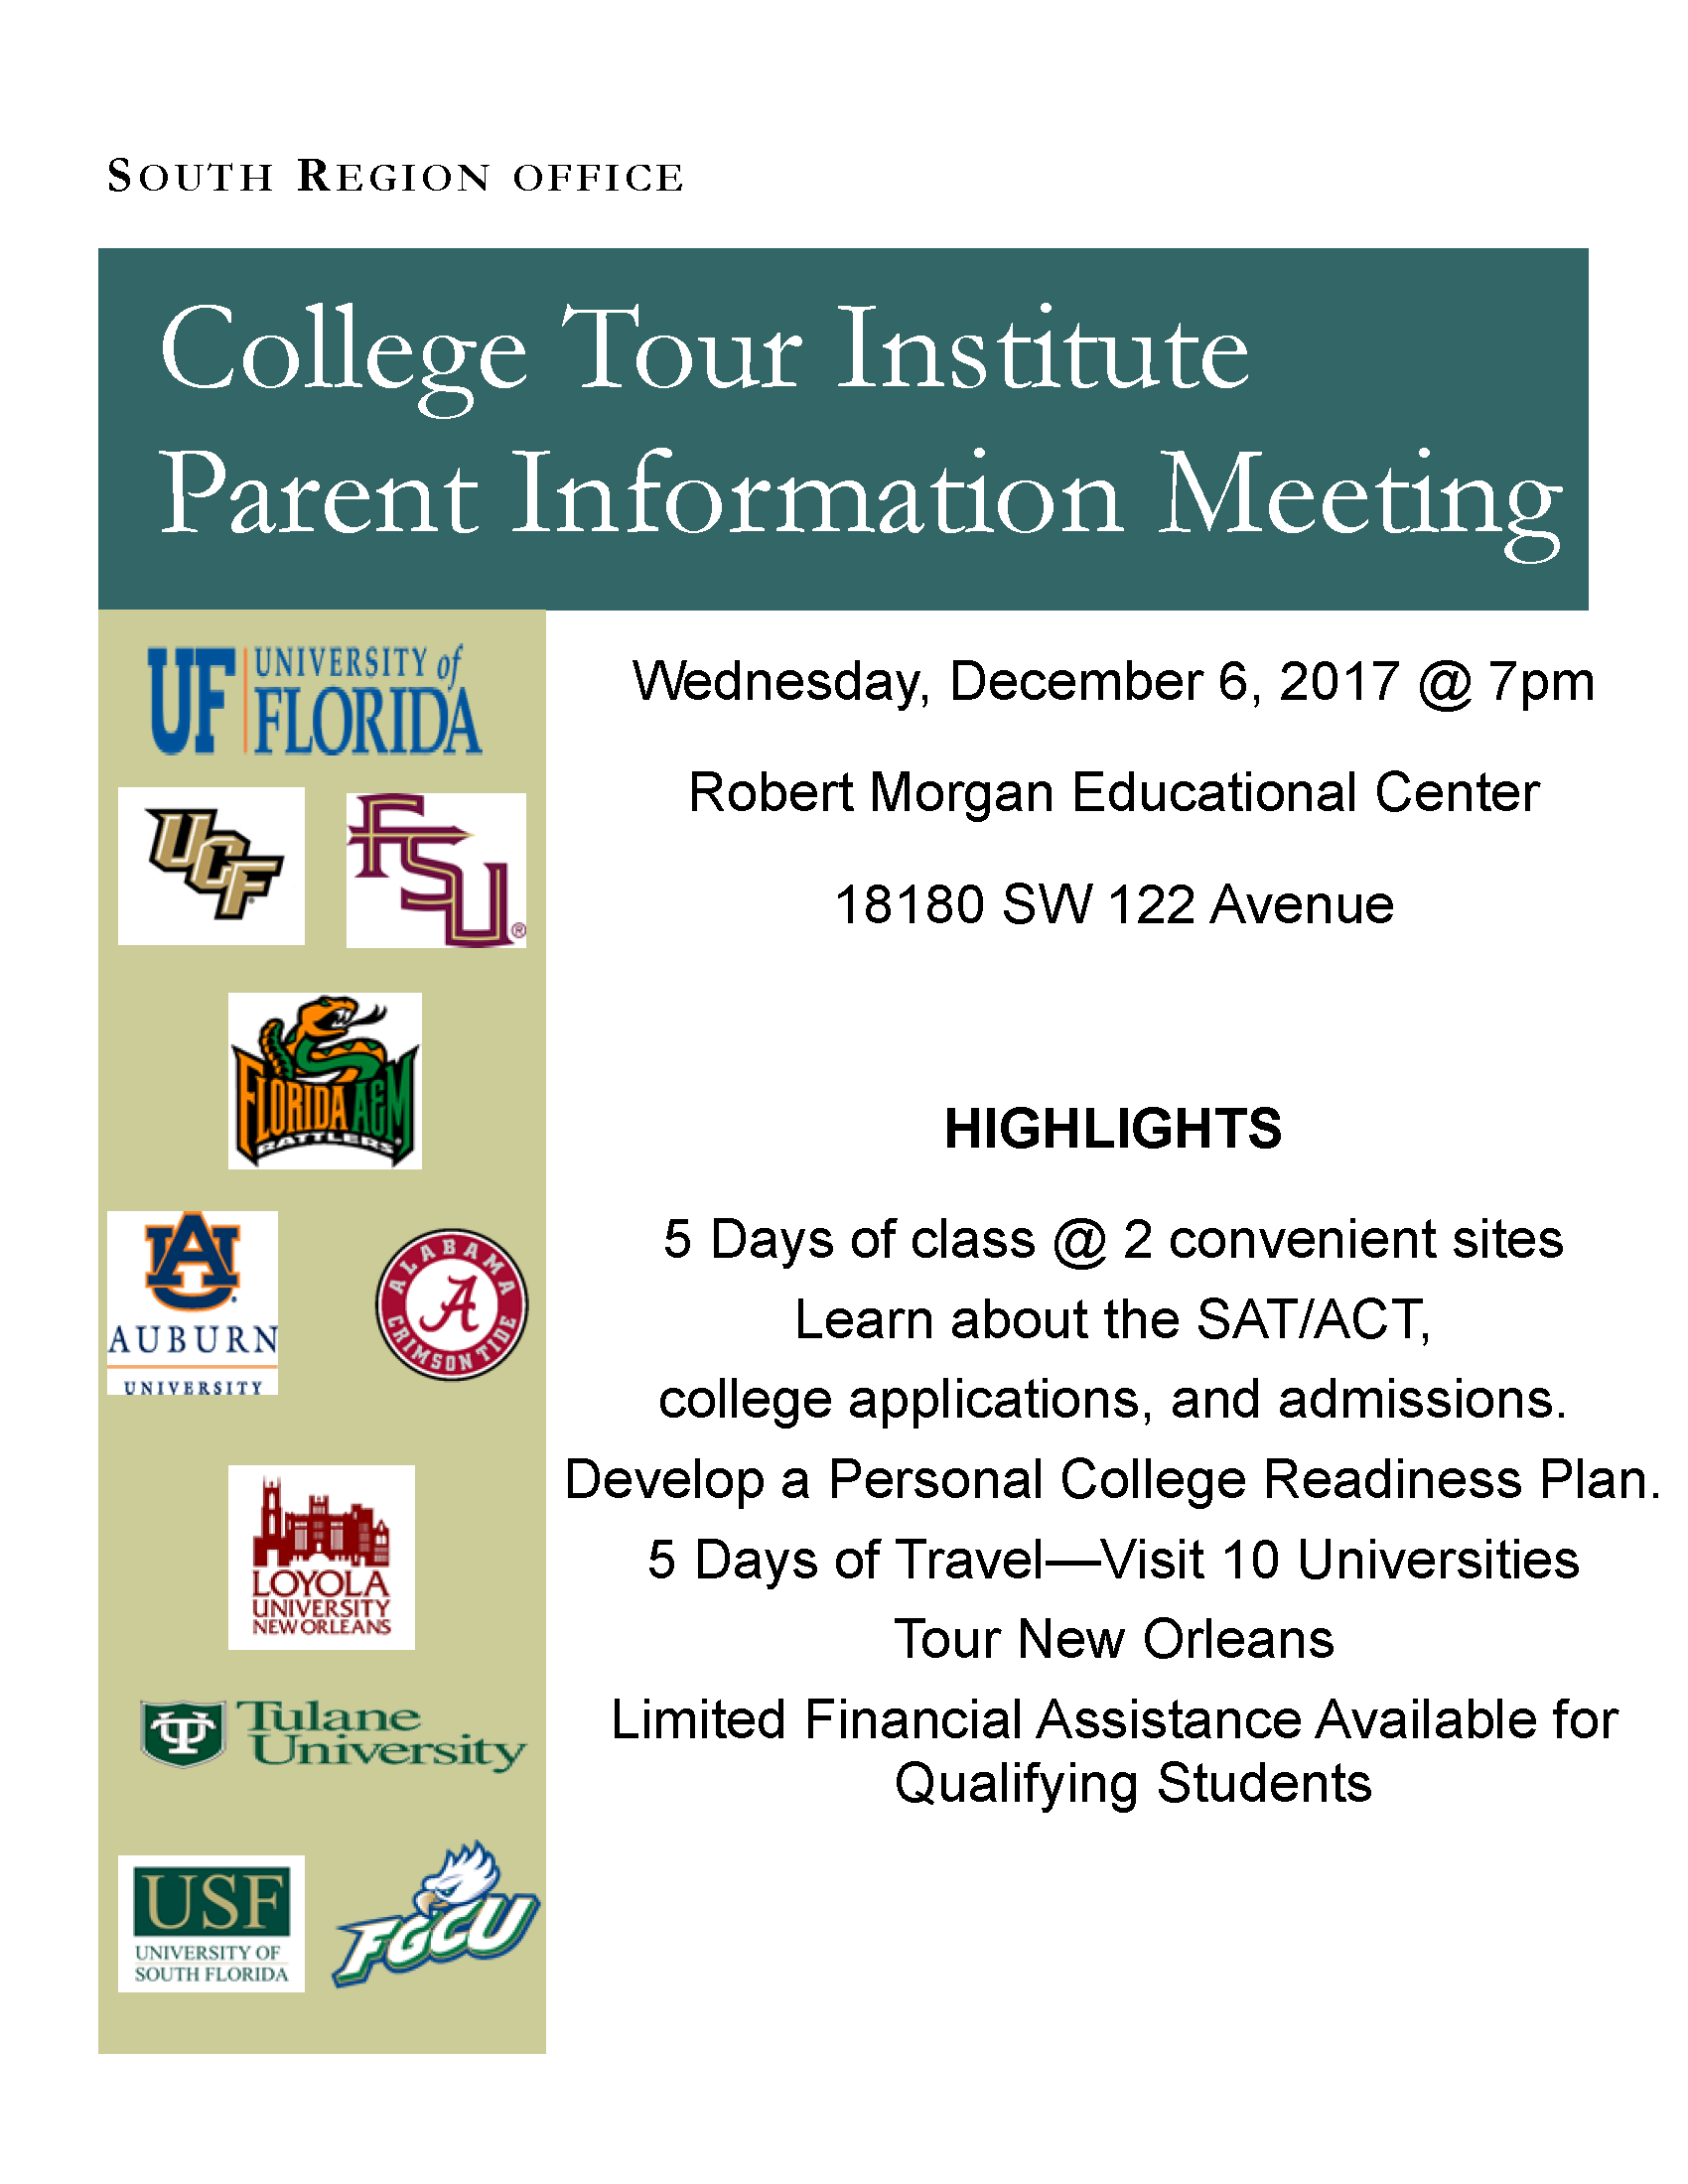 College Tour Institute Parent Information Meeting